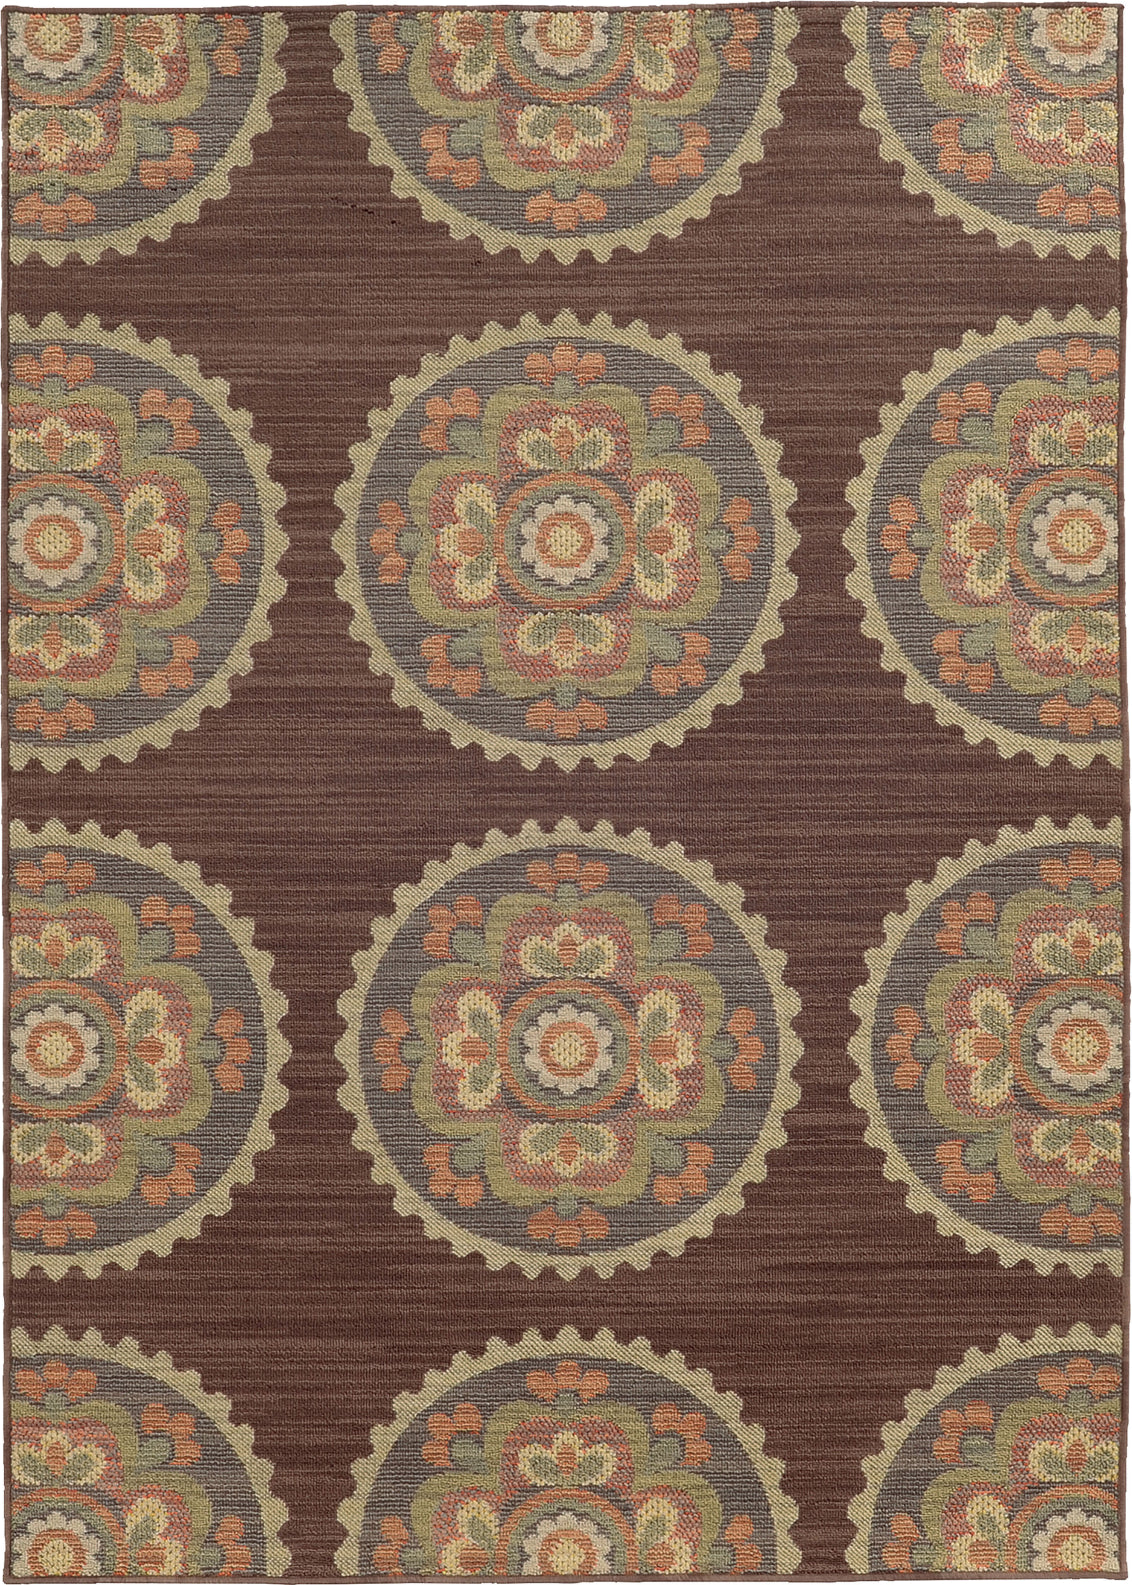 Tommy Bahama Cabana 501M2 Brown Area Rug main image